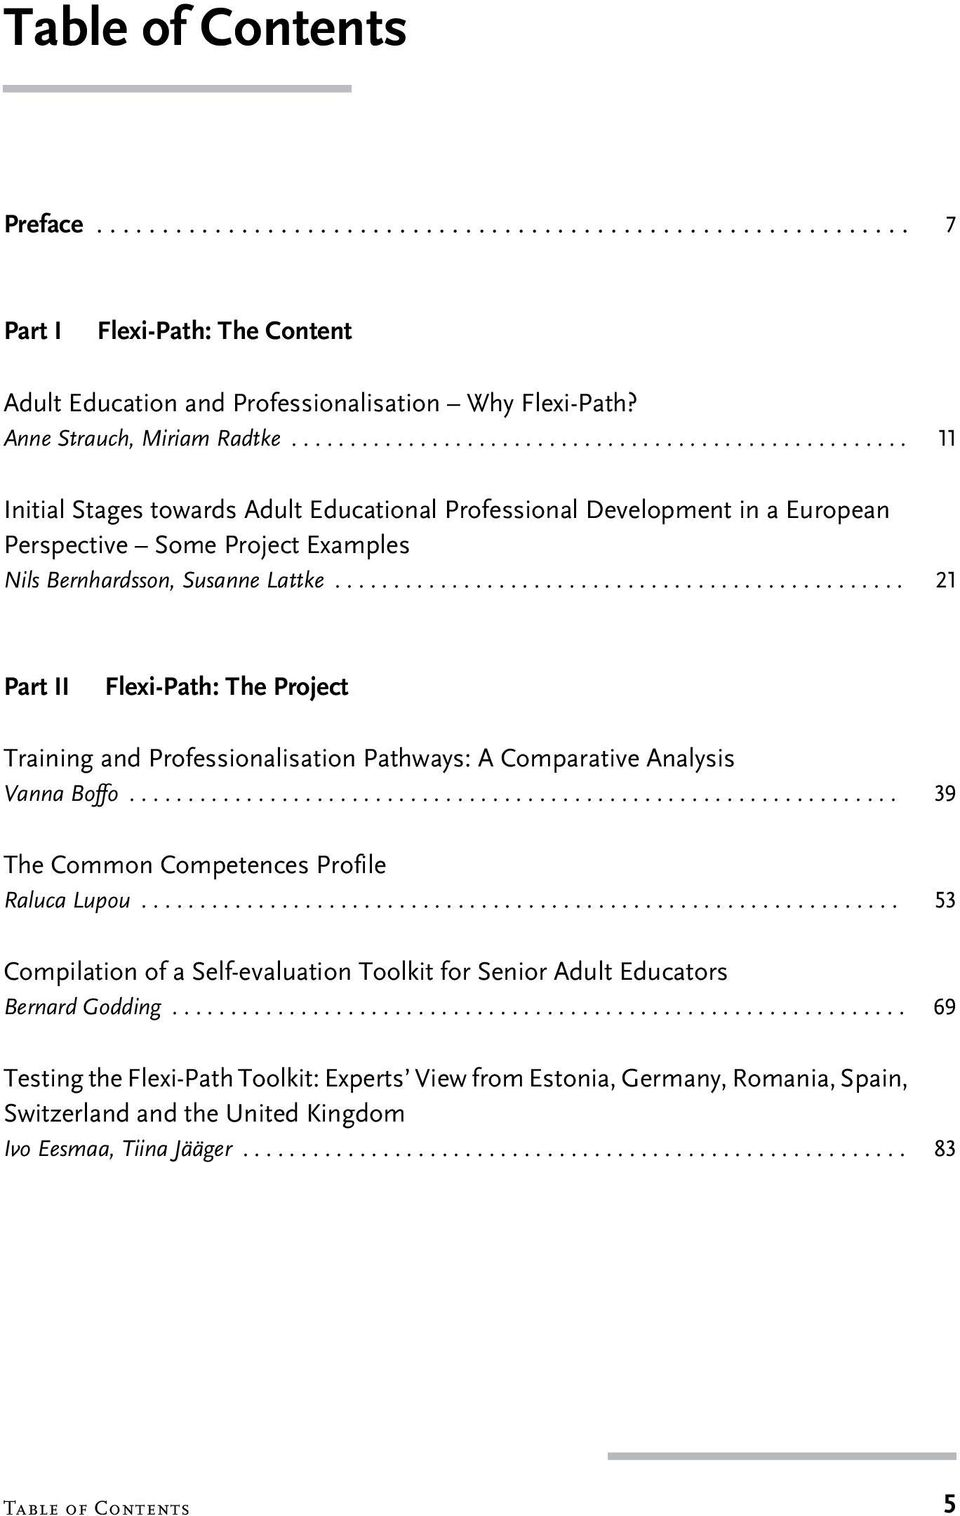 ................................................ 21 Part II Flexi-Path: The Project Training and Professionalisation Pathways: A Comparative Analysis Vanna Boffo.